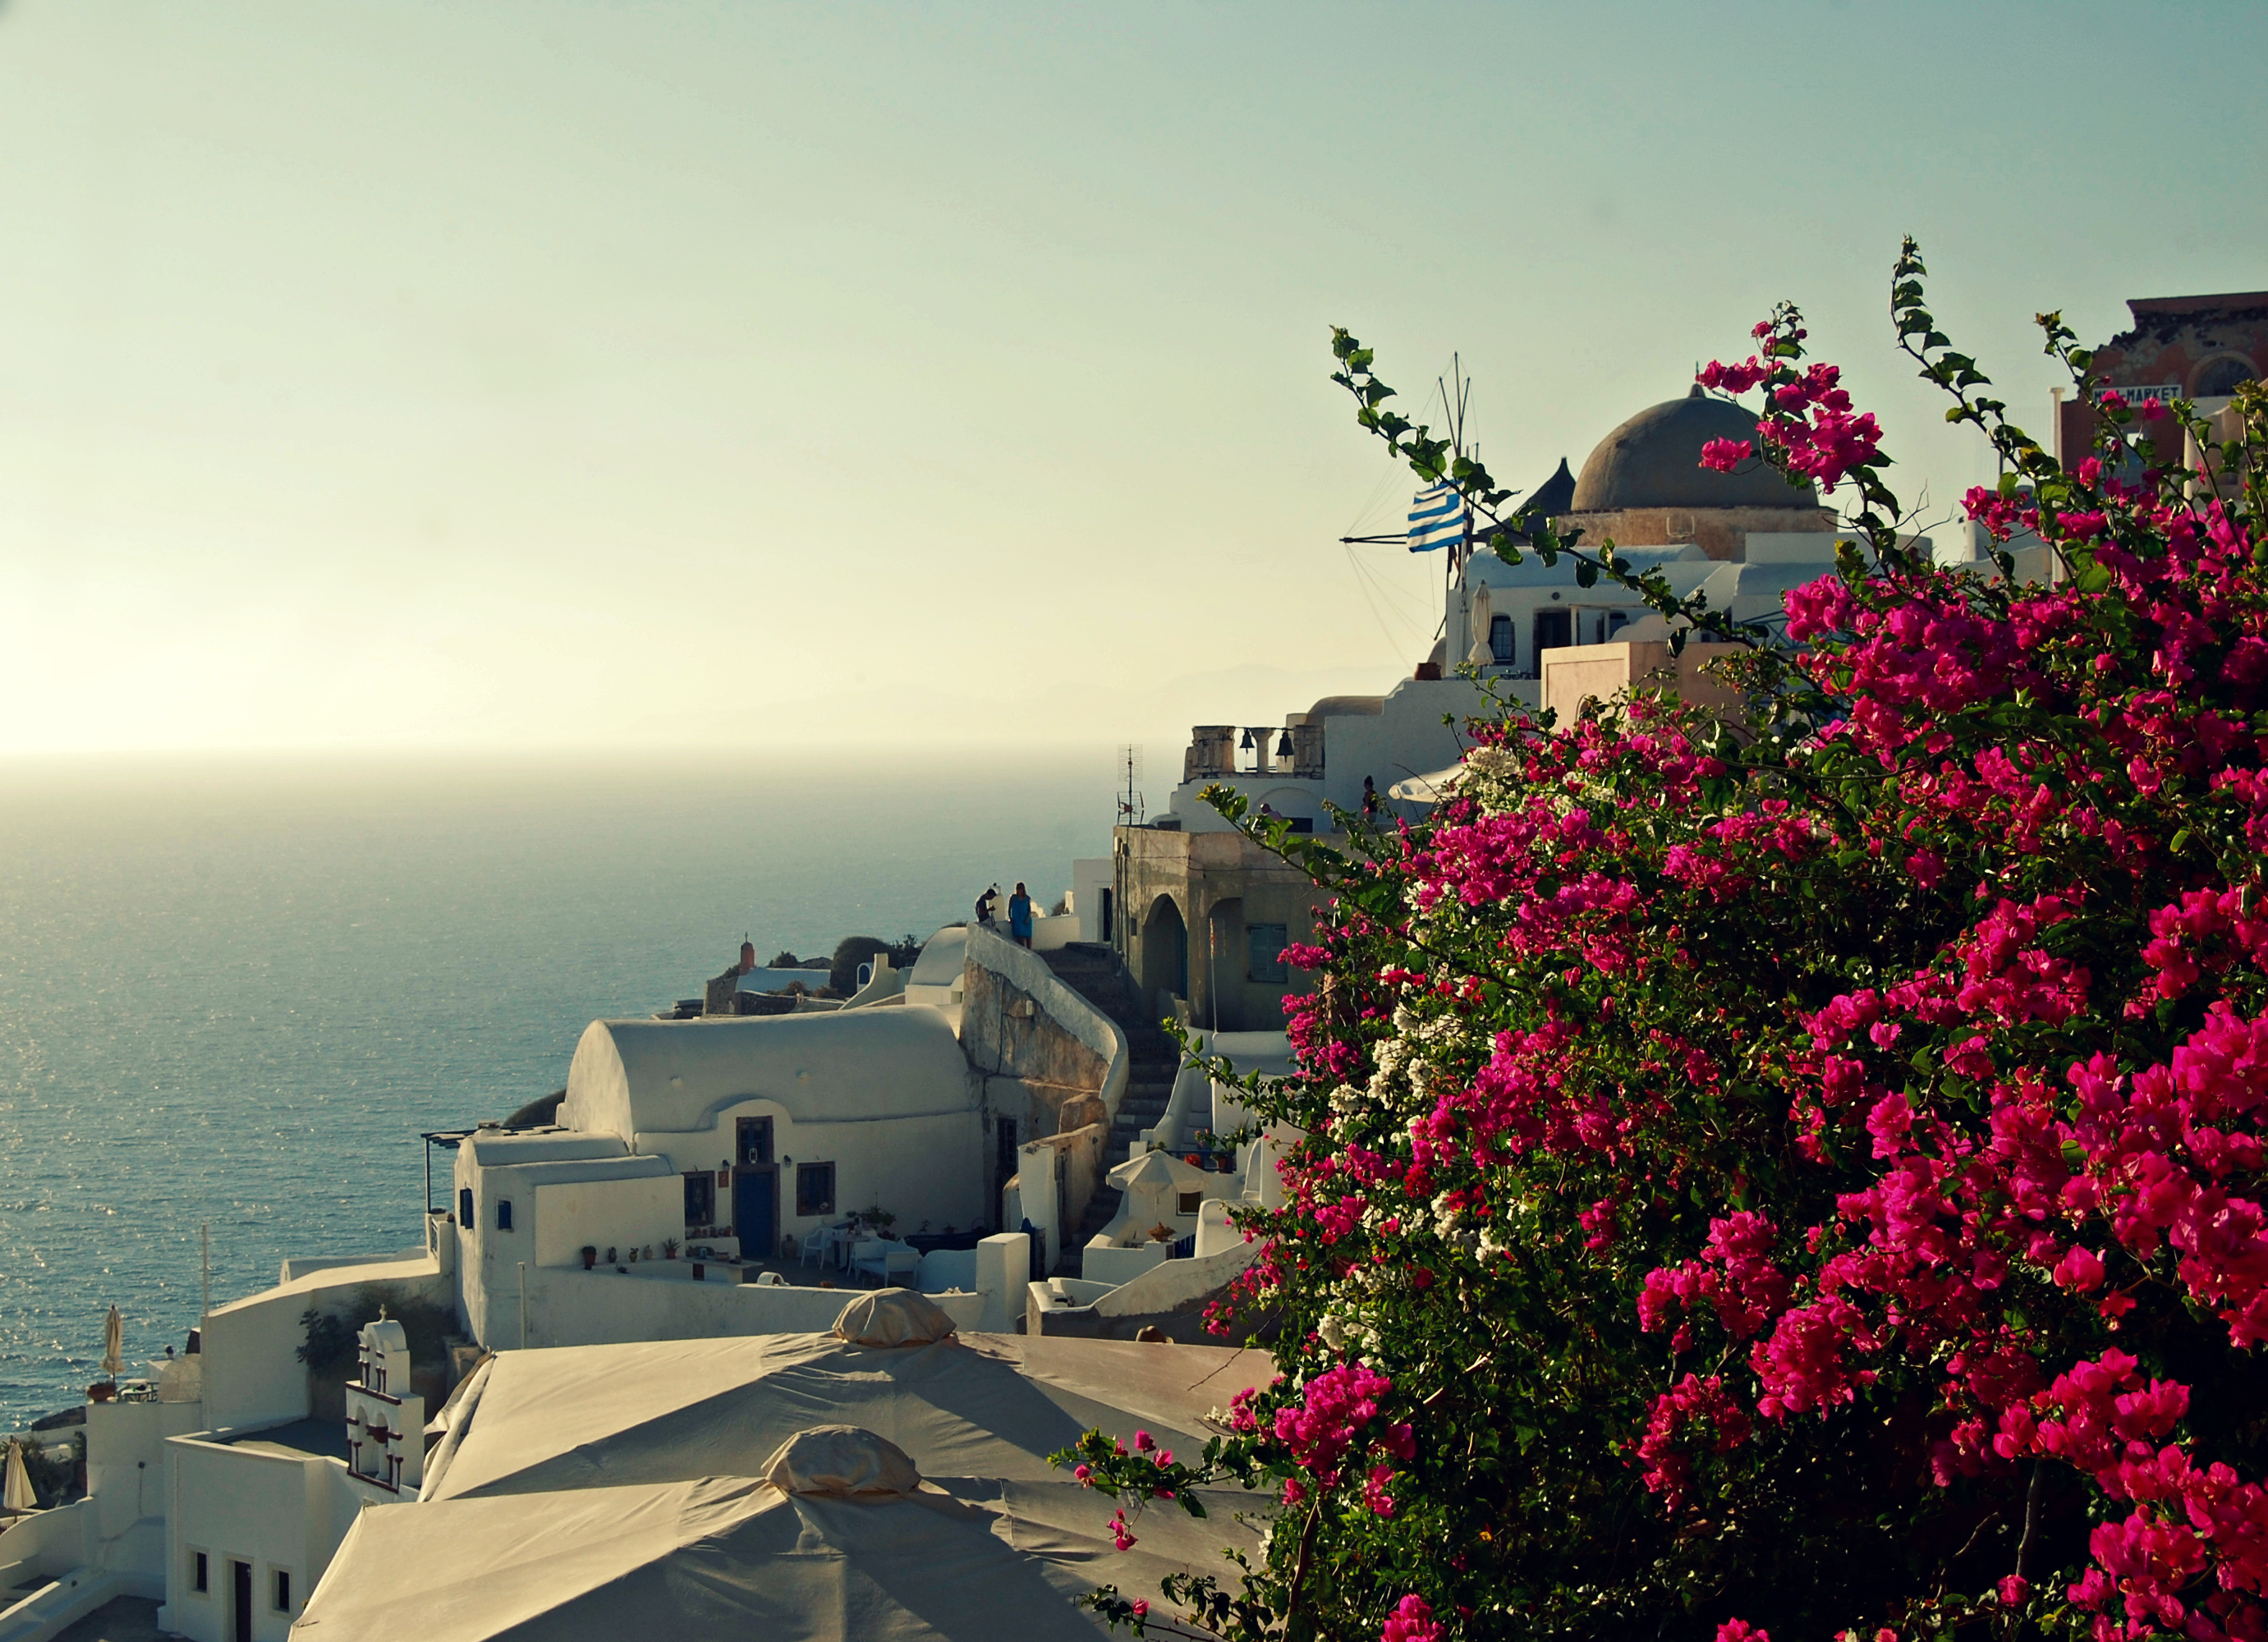 A floral view of Oia, Santorini, Greece